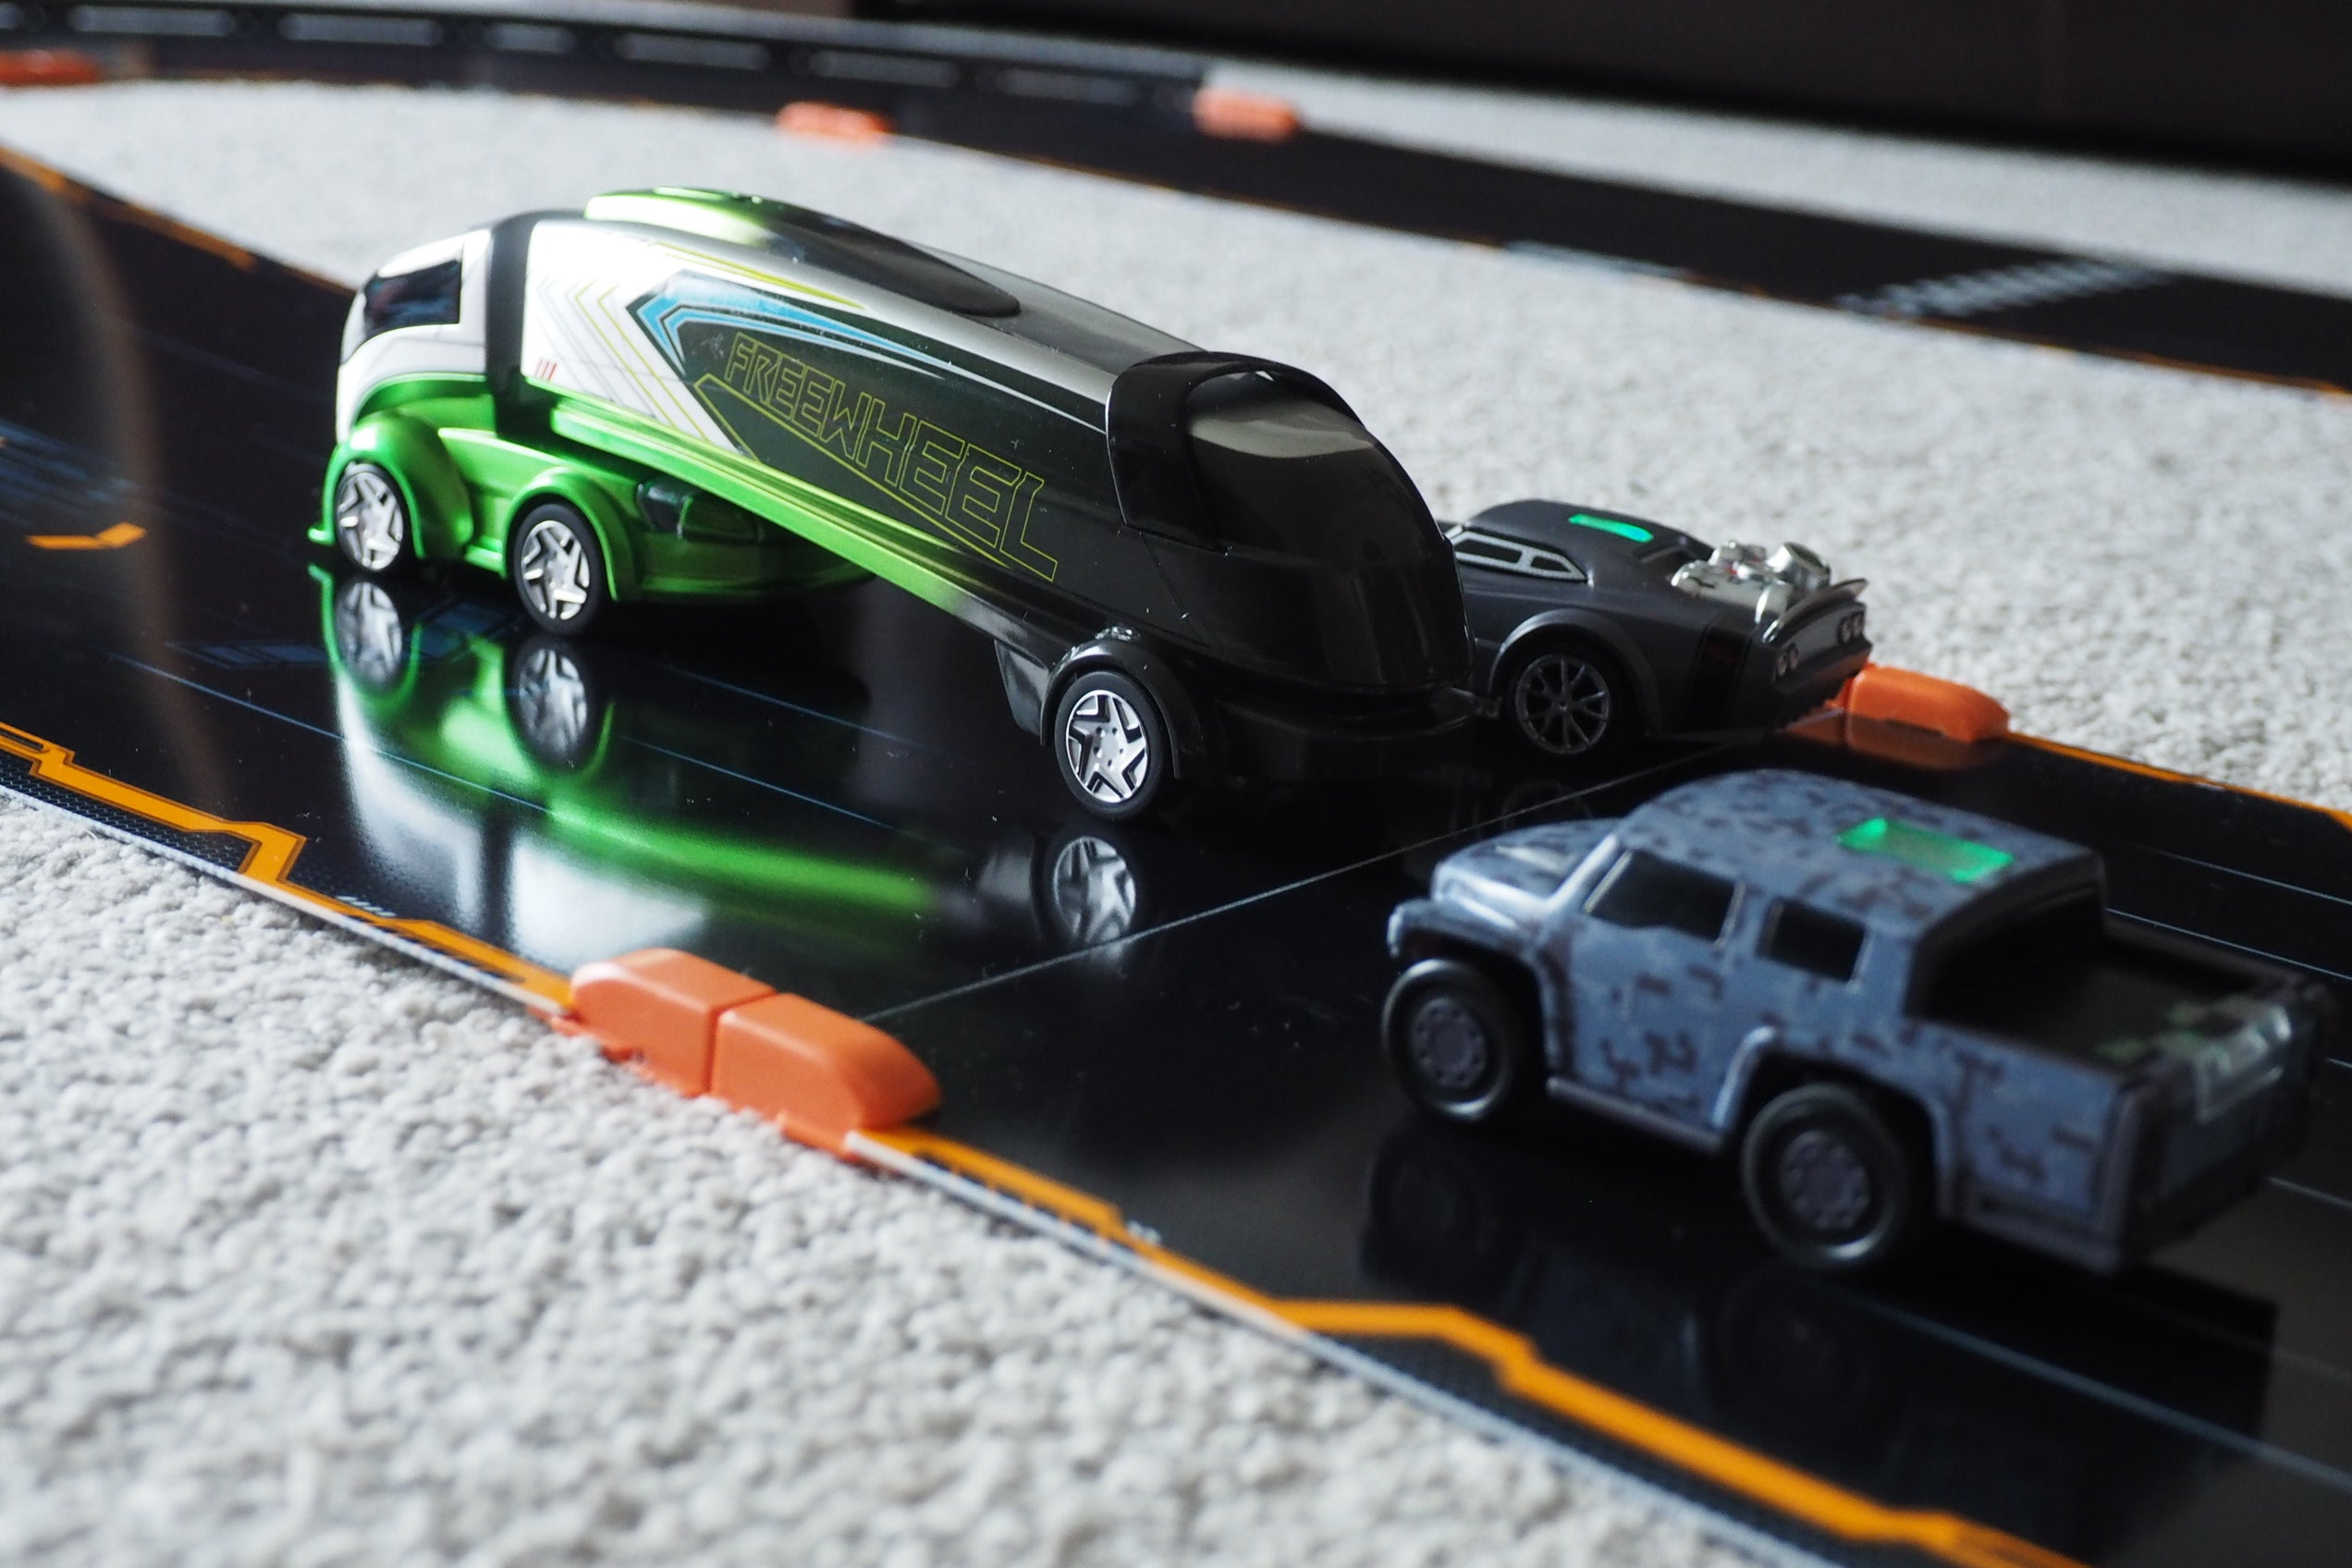 anki overdrive fast furious edition review trusted reviews. Black Bedroom Furniture Sets. Home Design Ideas